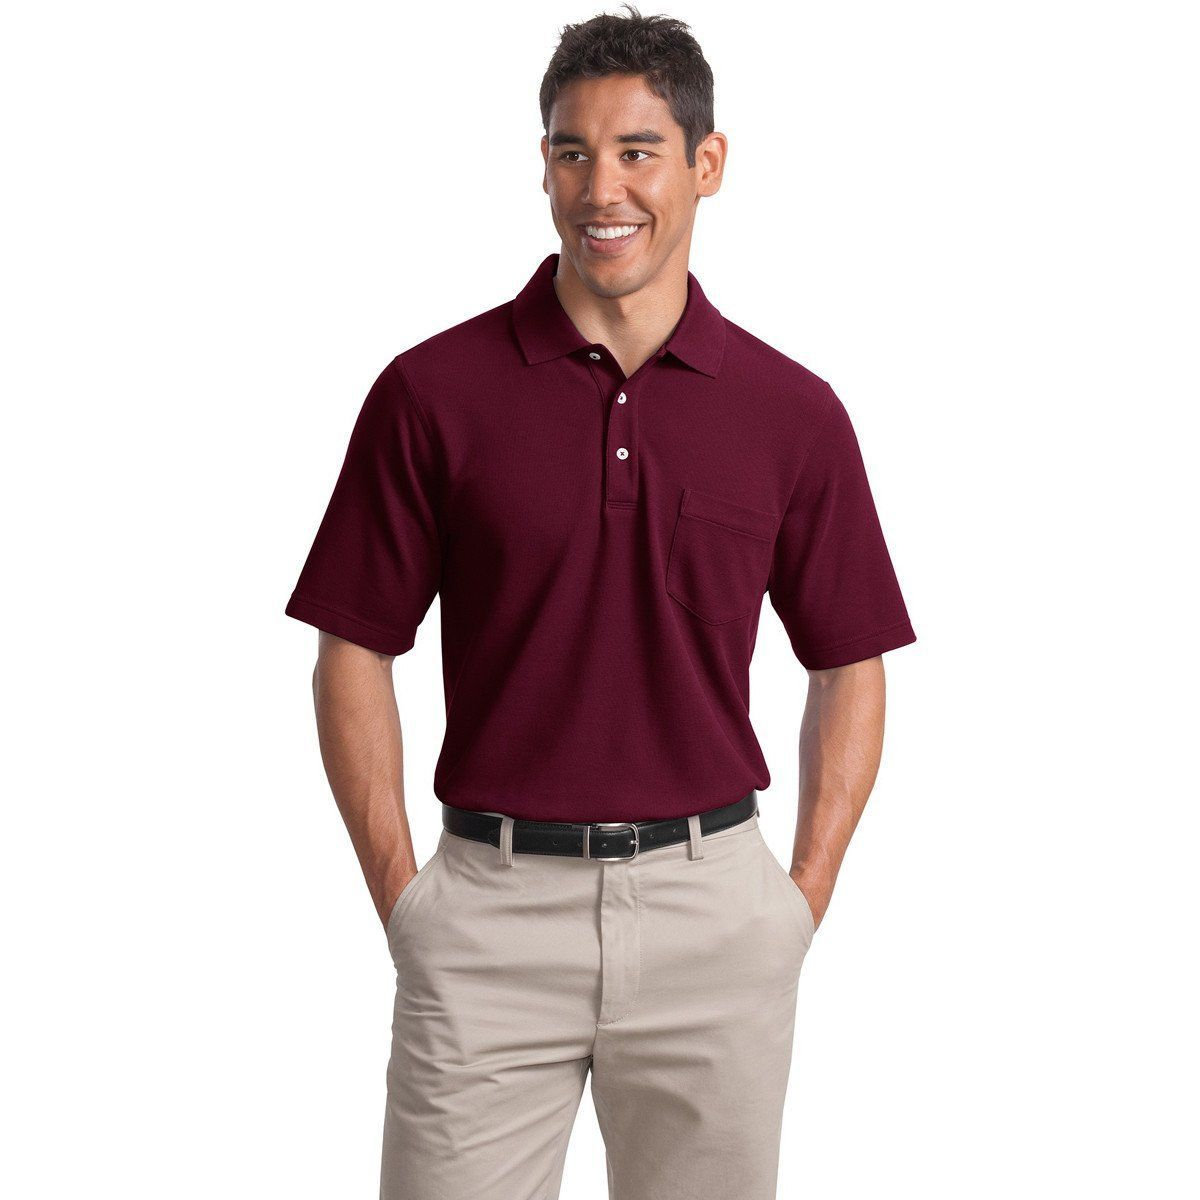 065950f2 Personalized Embroidered Polo Shirts No Minimum - raveitsafe